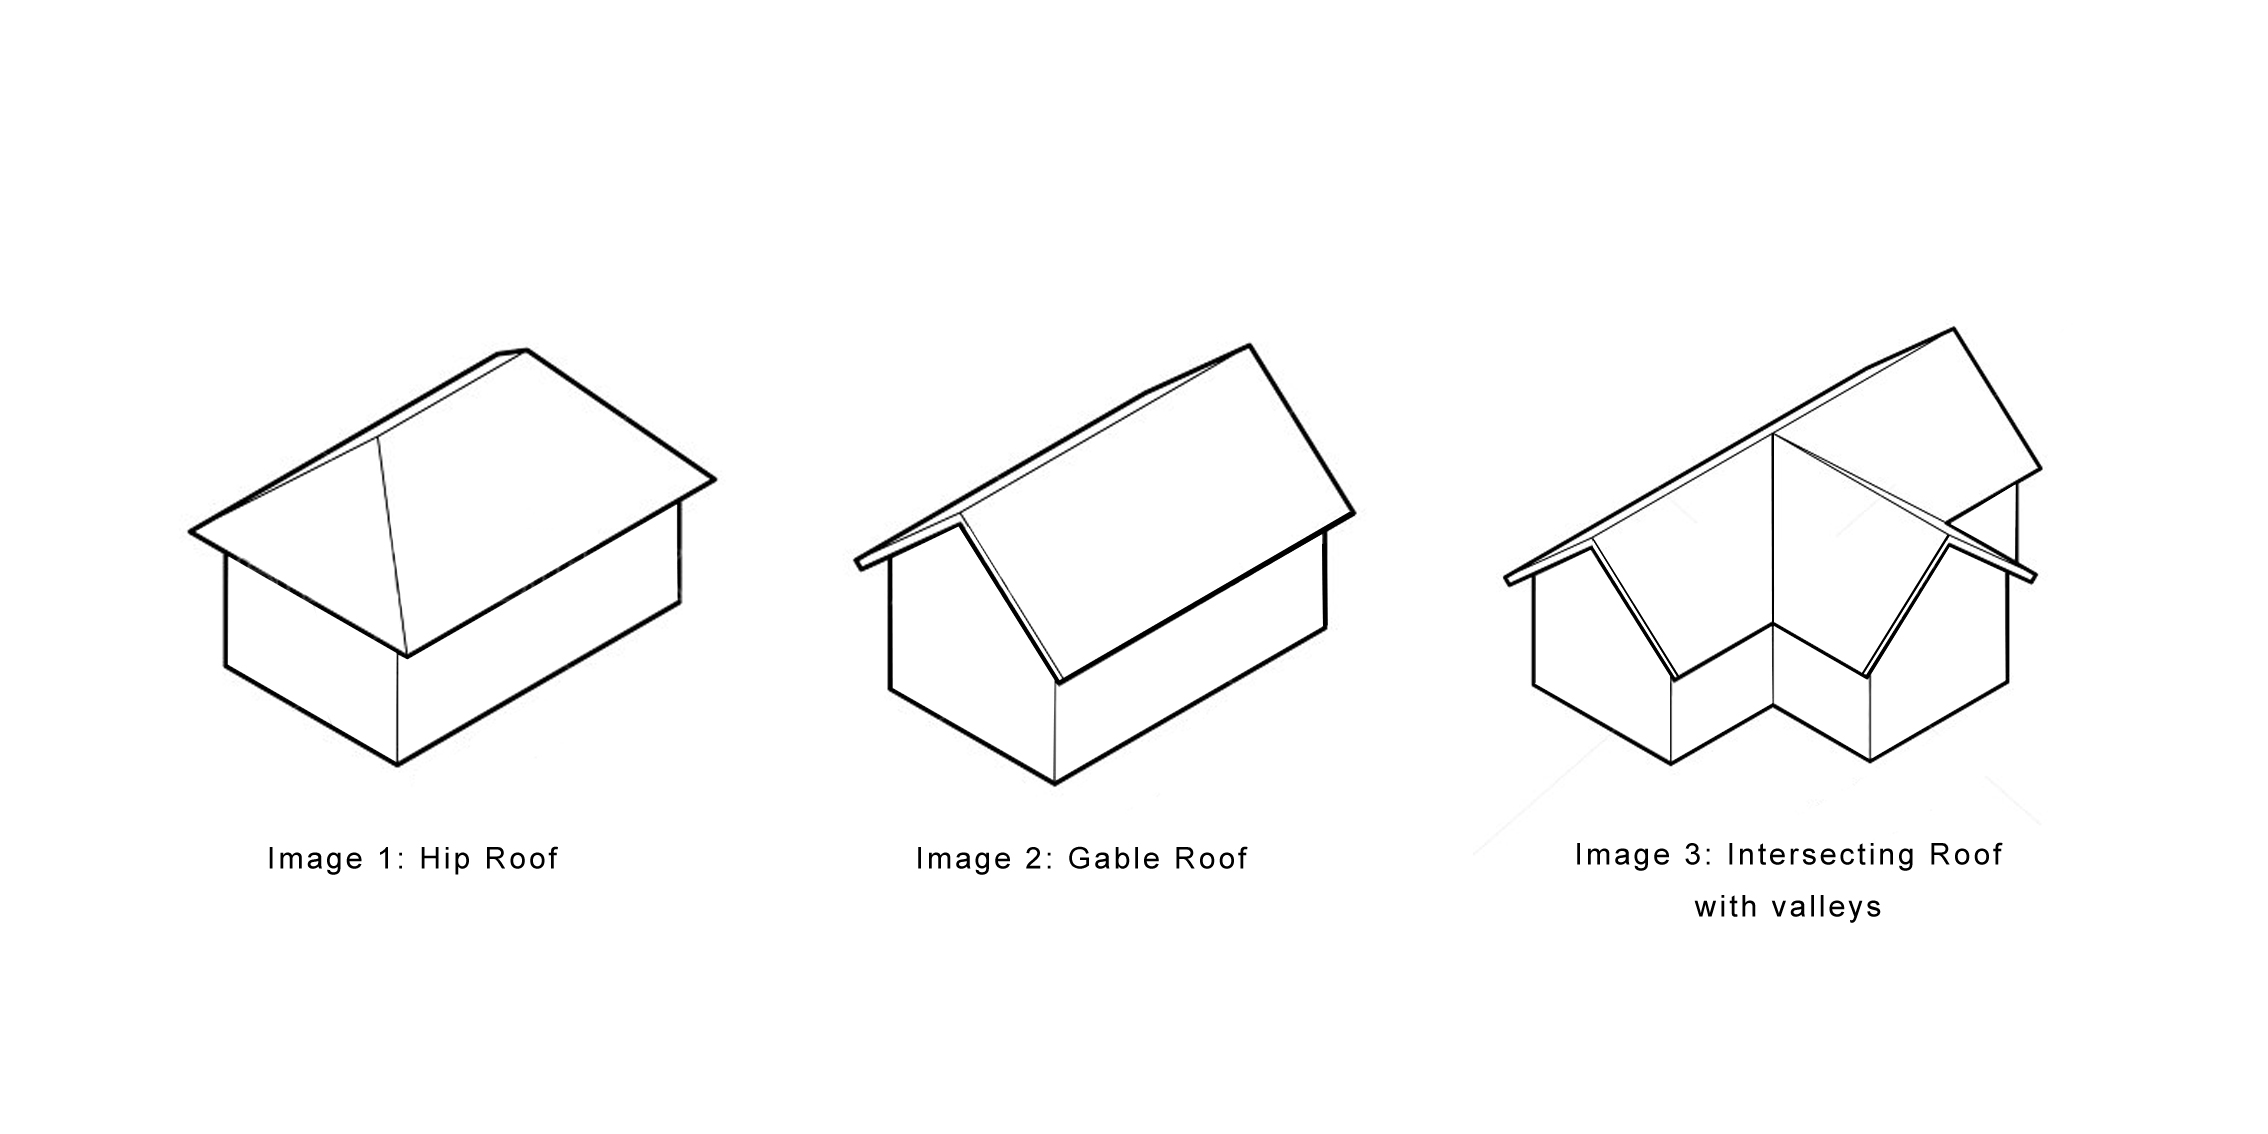 An image showing a gable, hipped and intersecting valley roof